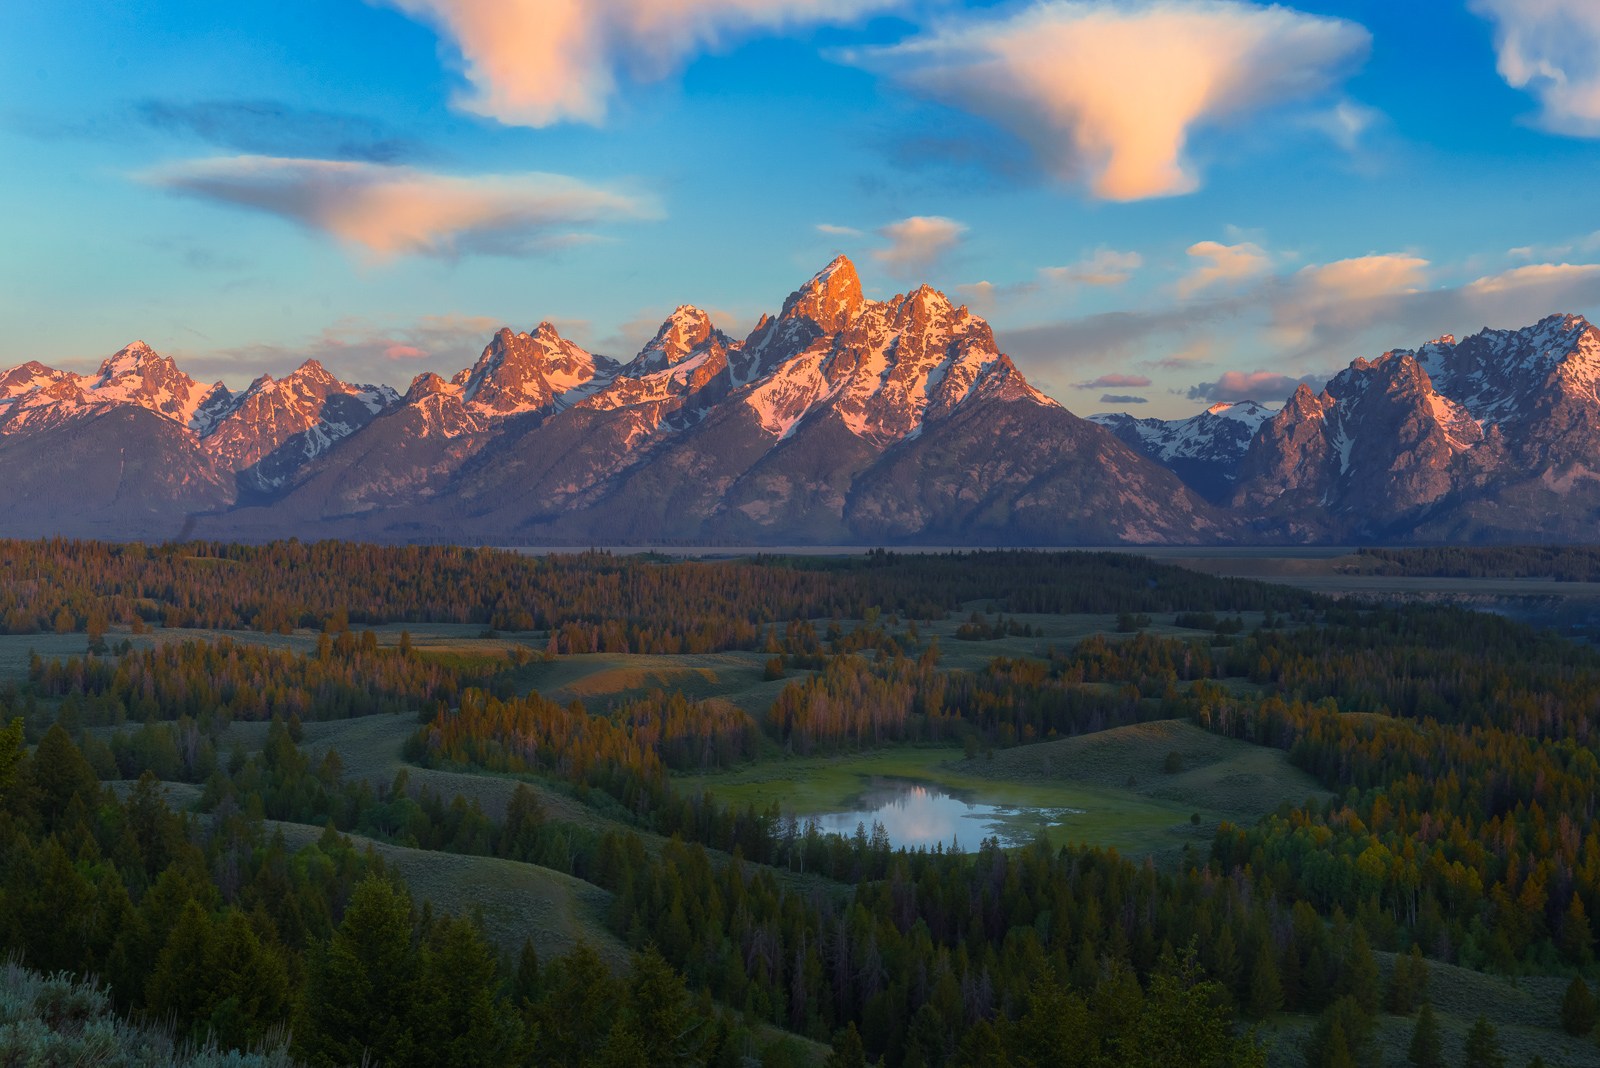 The Teton Range at sunrise with amazing clouds and light.